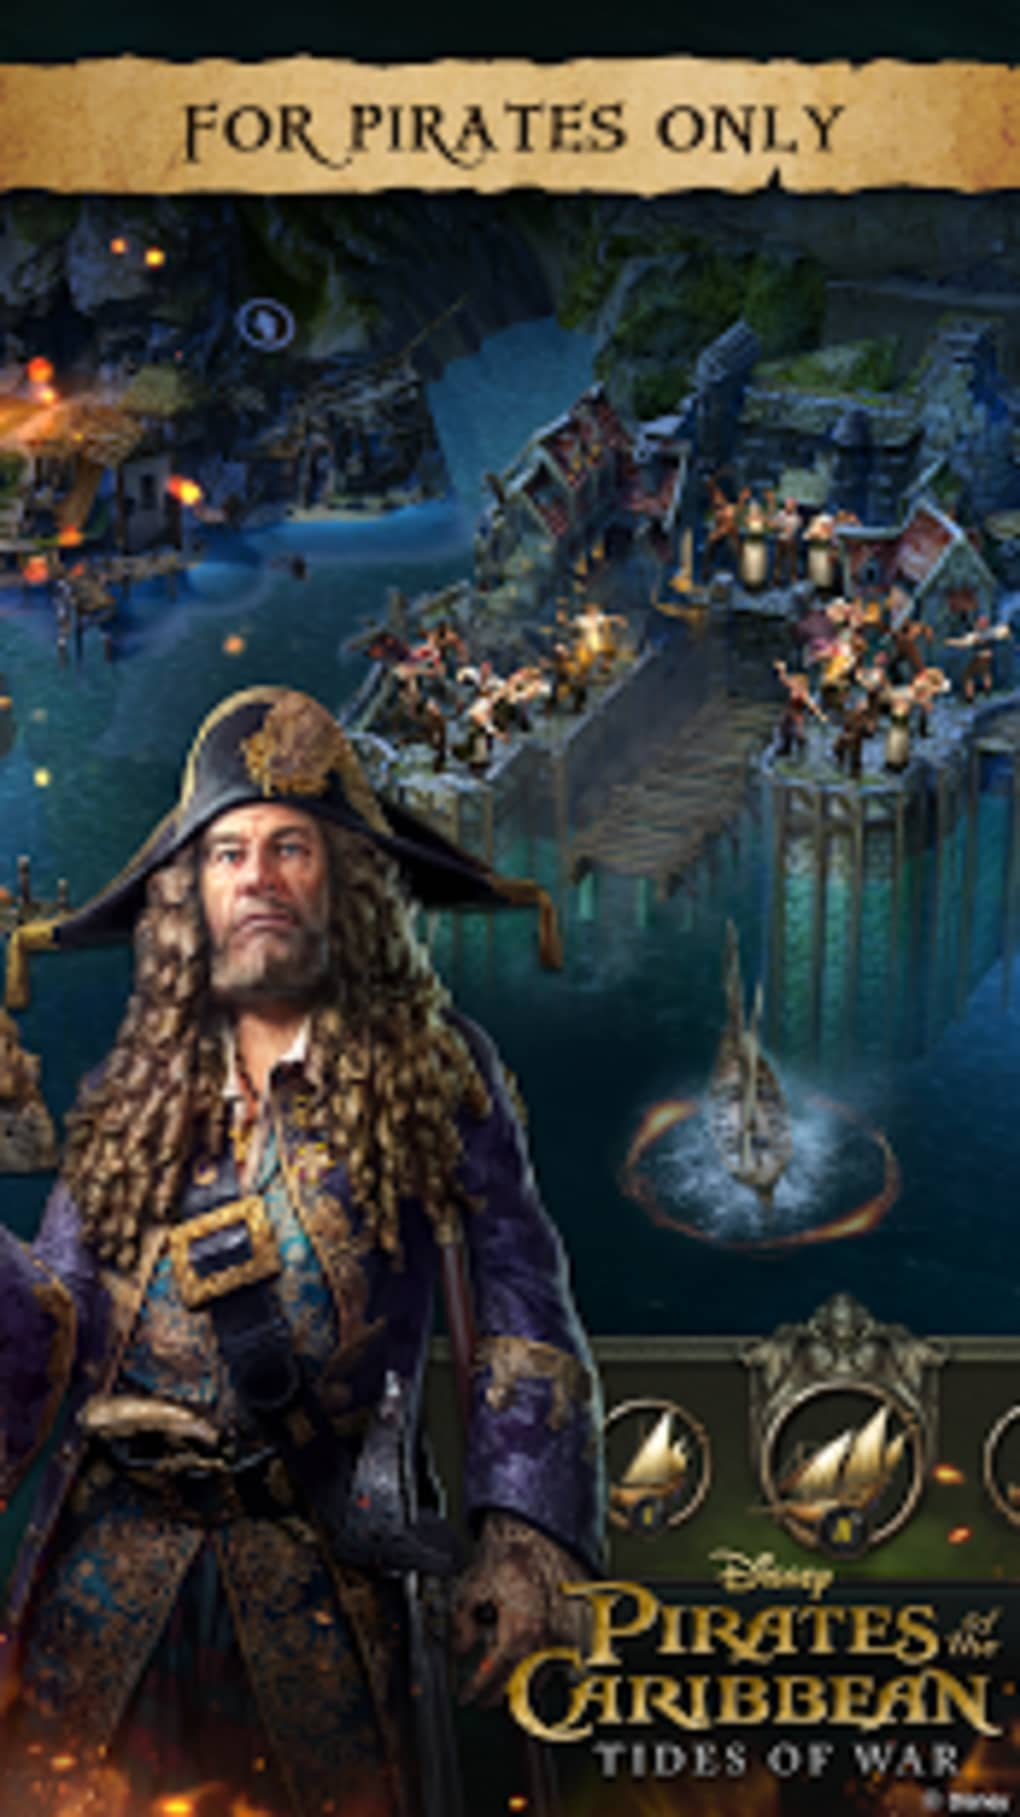 pirates of the caribbean free download 2017